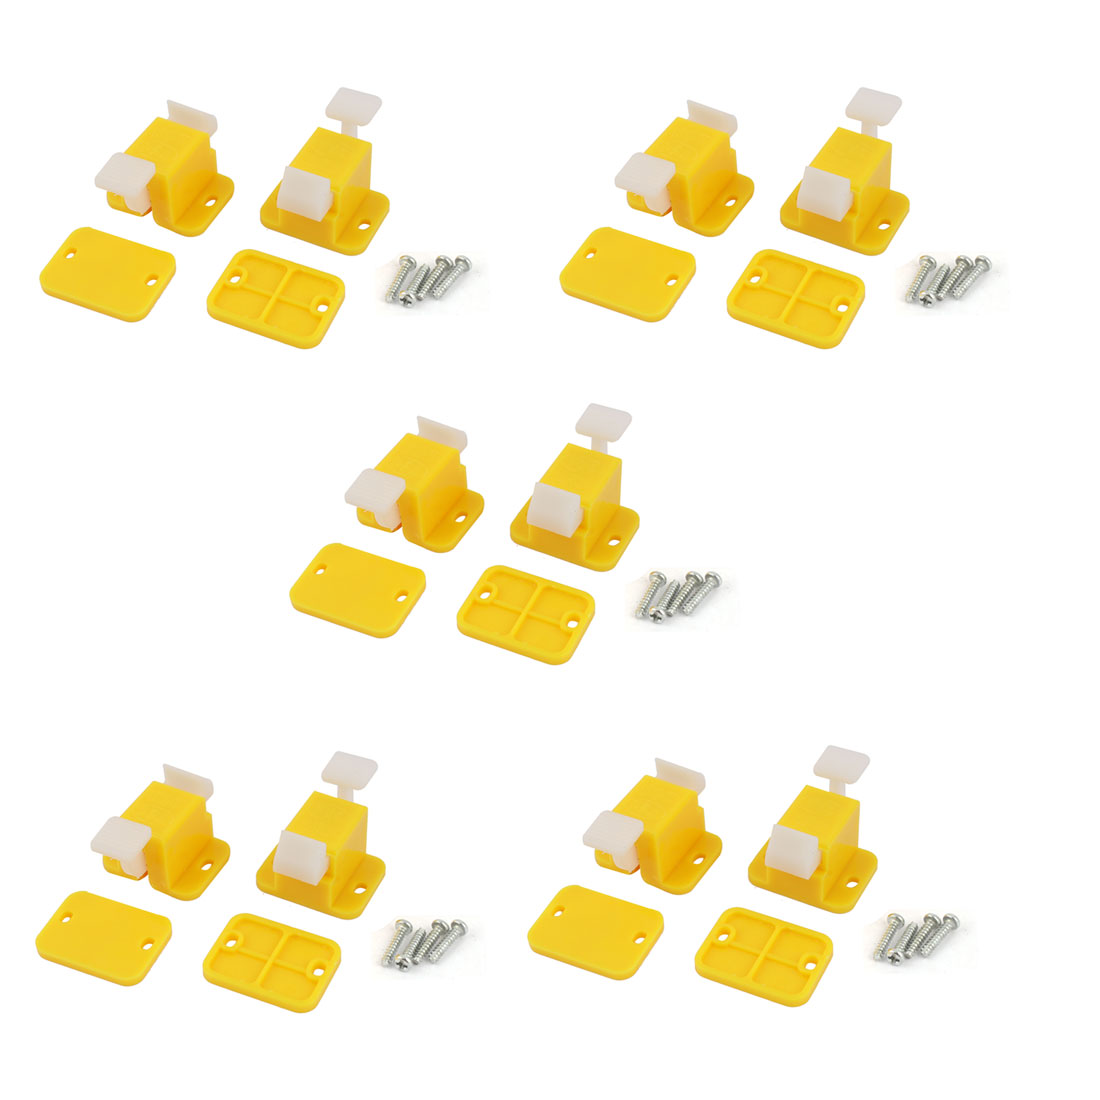 10 Pcs Plastic Prototype Test Fixture Jig Yellow White for PCB Board